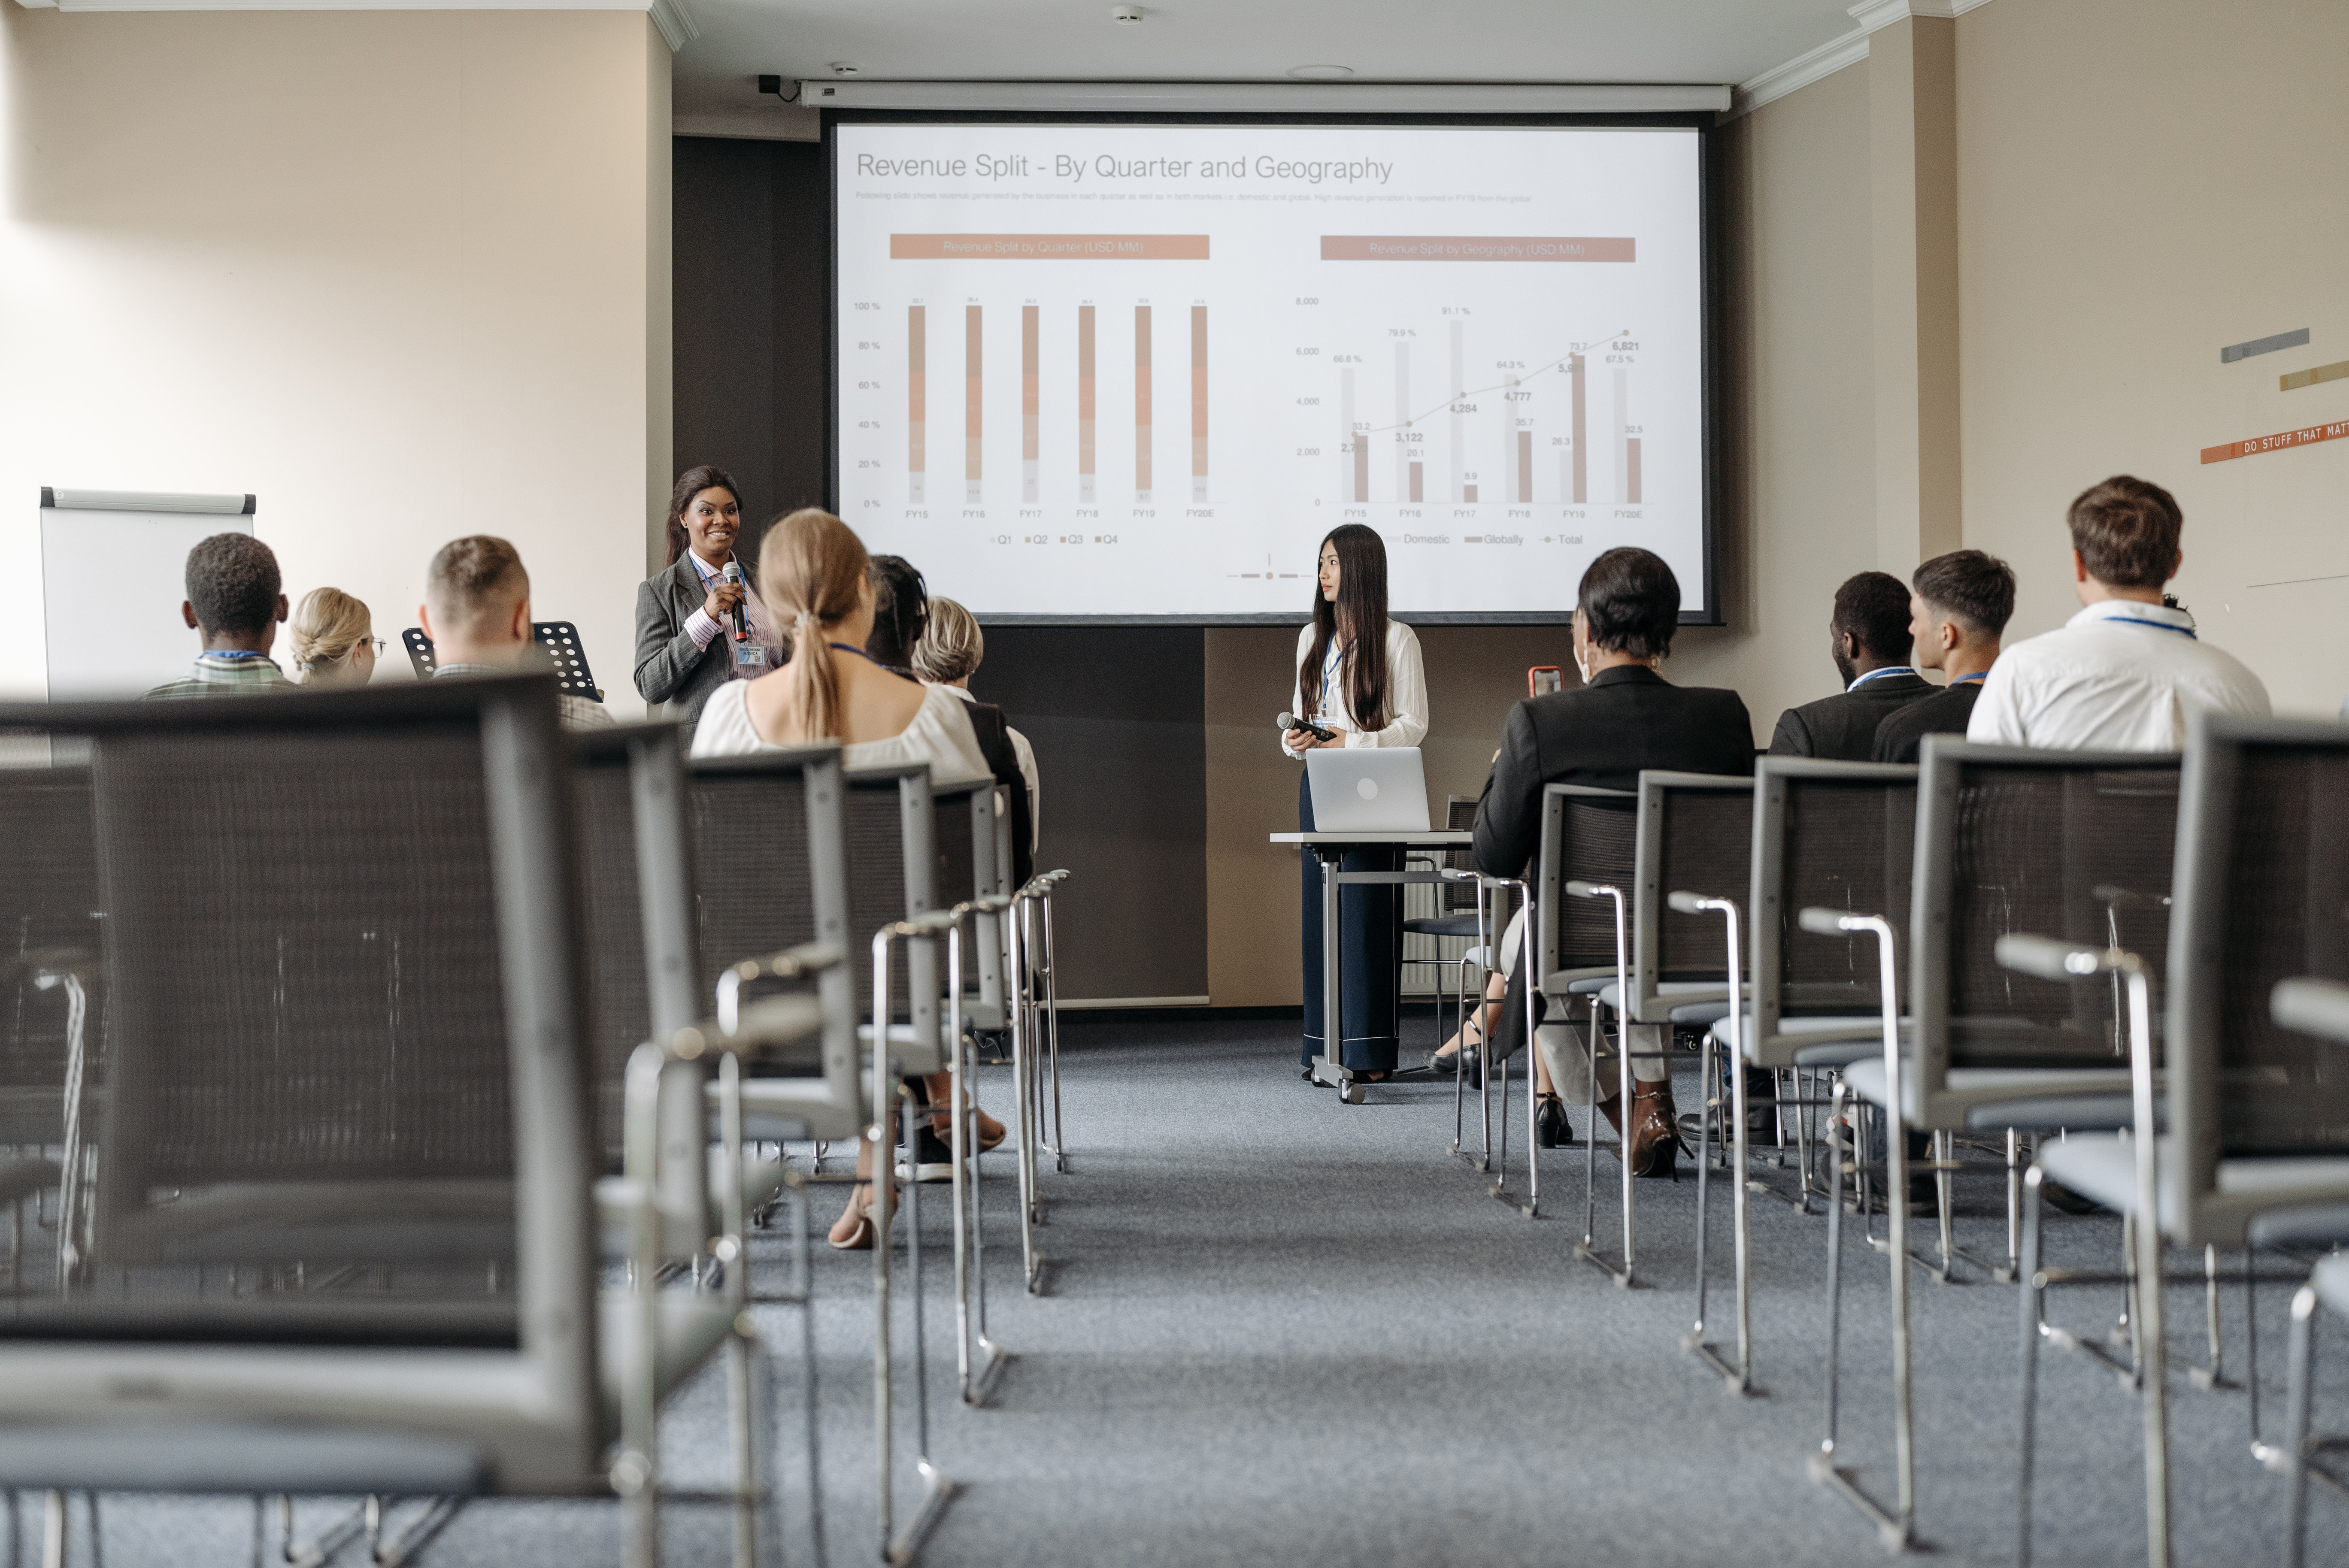 Two females speaking in front of an audience as part of a corporate meeting   Global Agency, BCD Meetings & Events